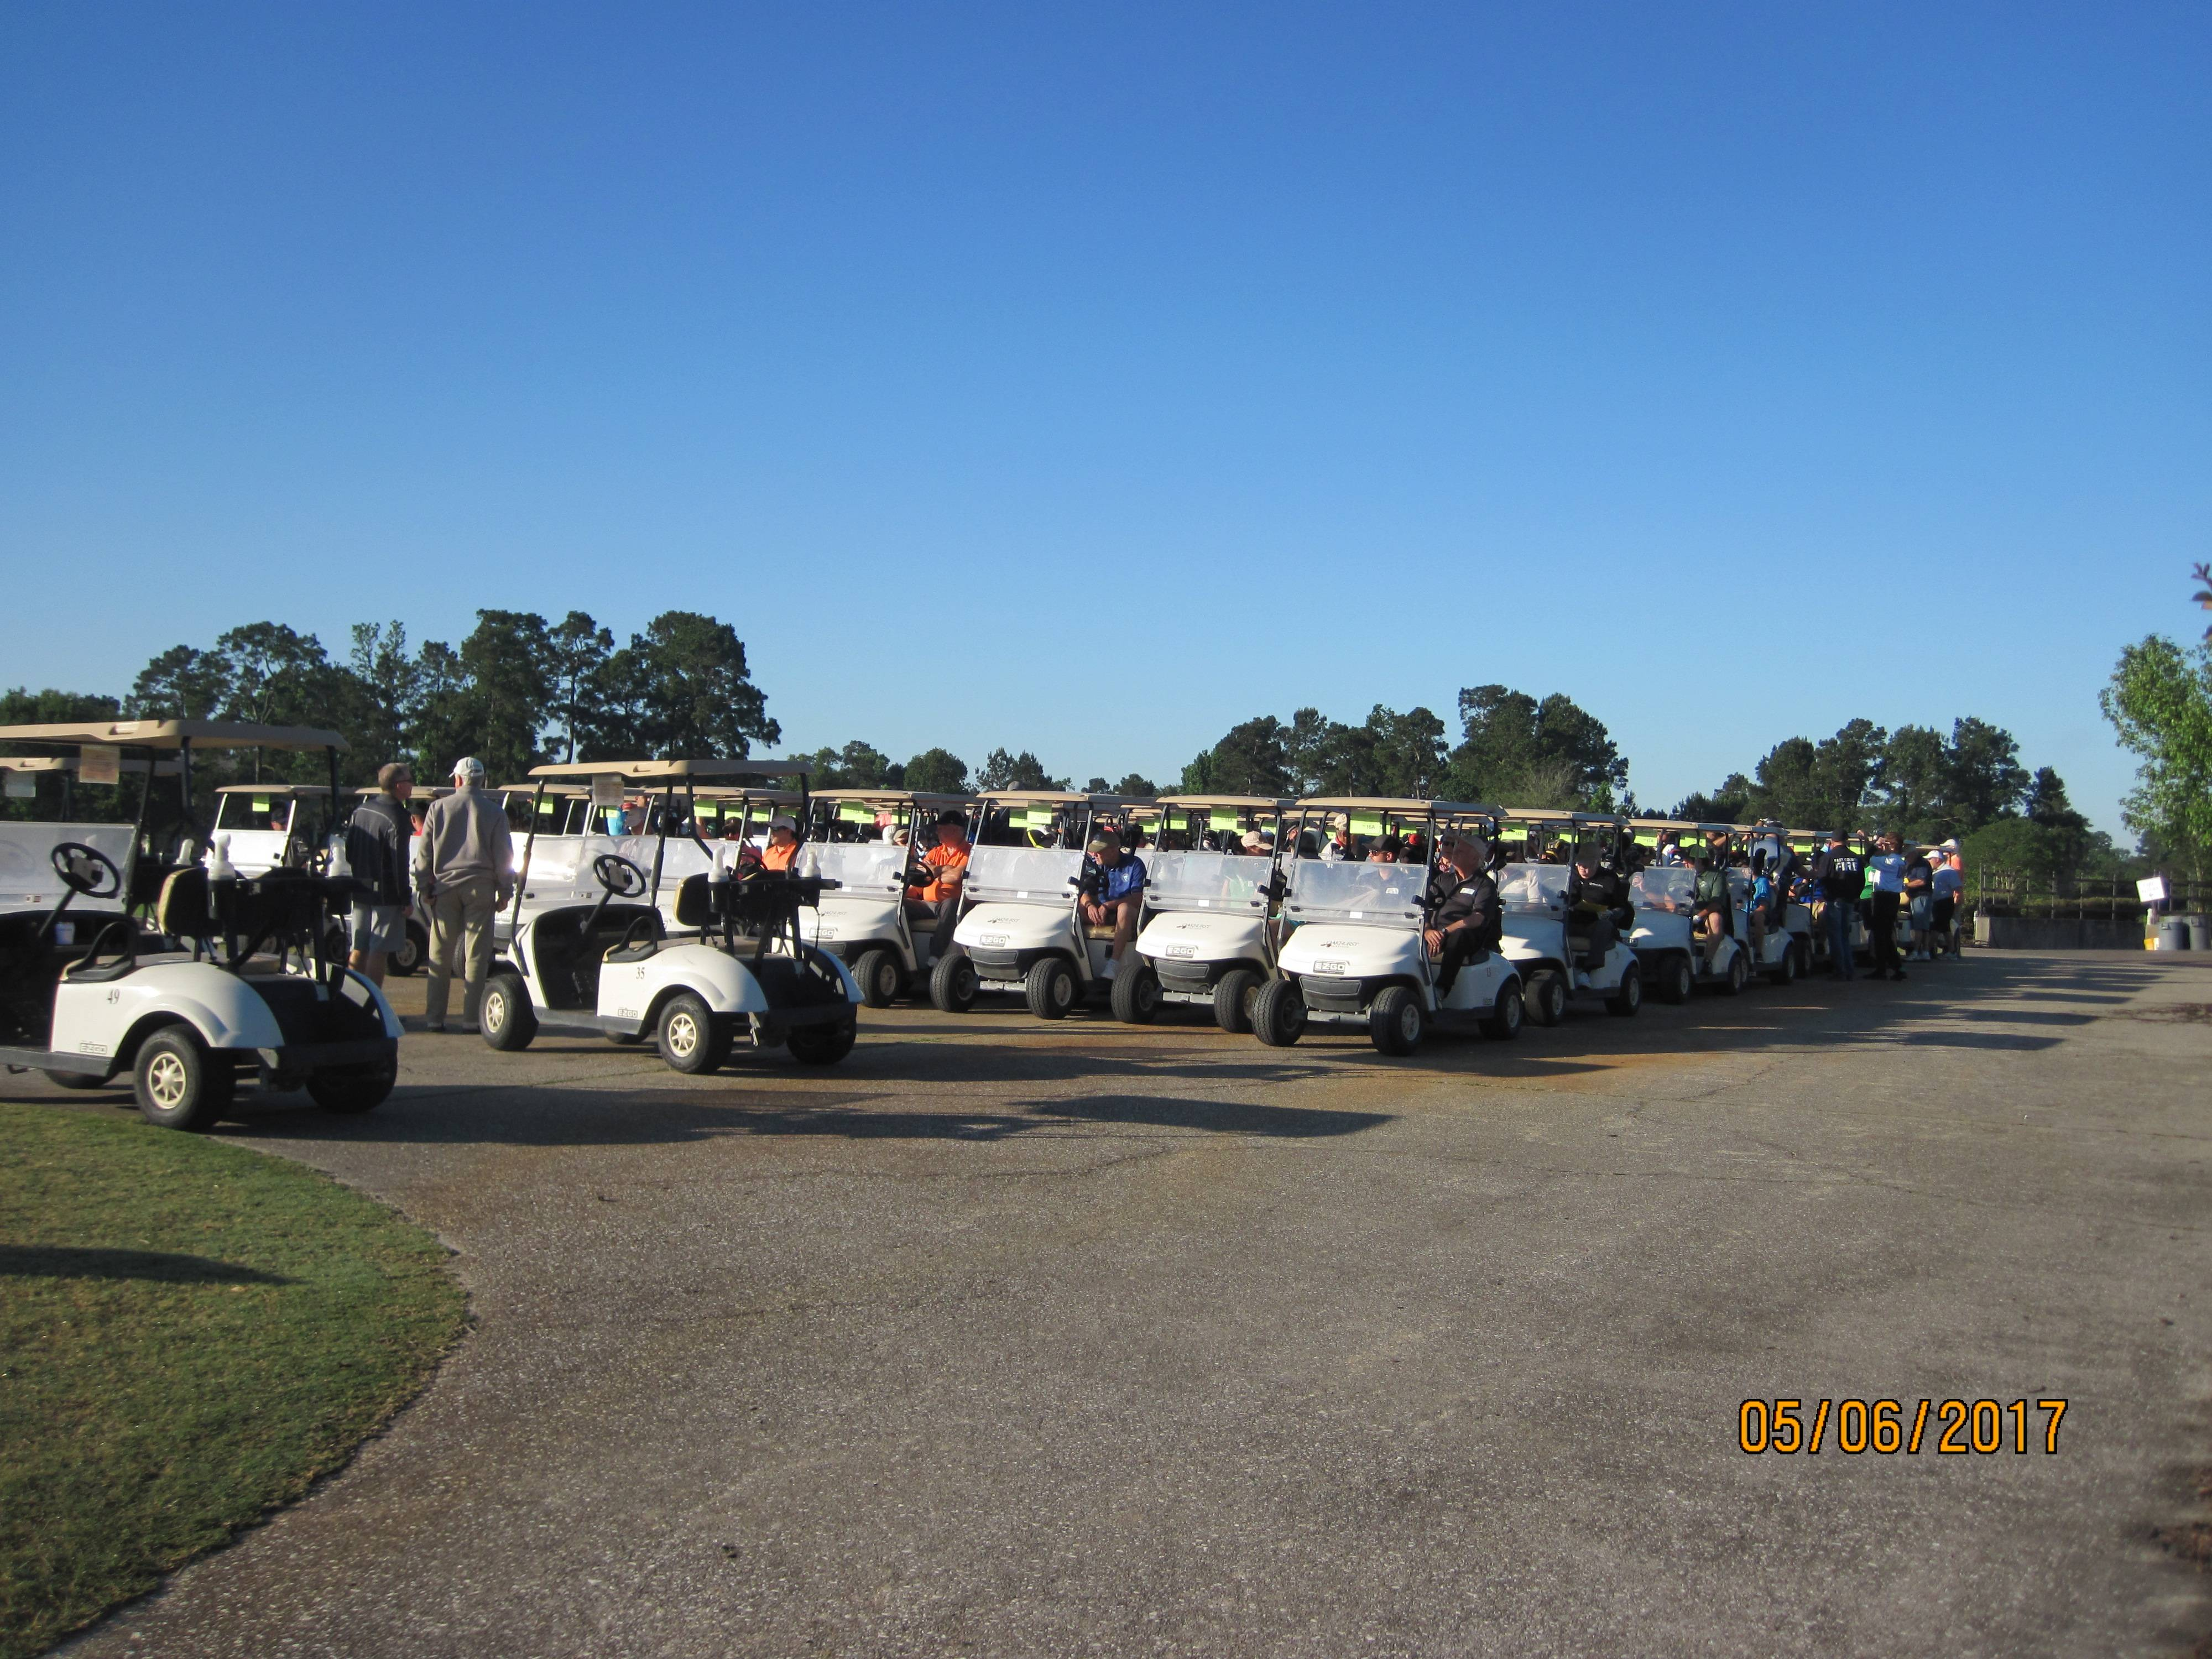 Staged Golf Carts